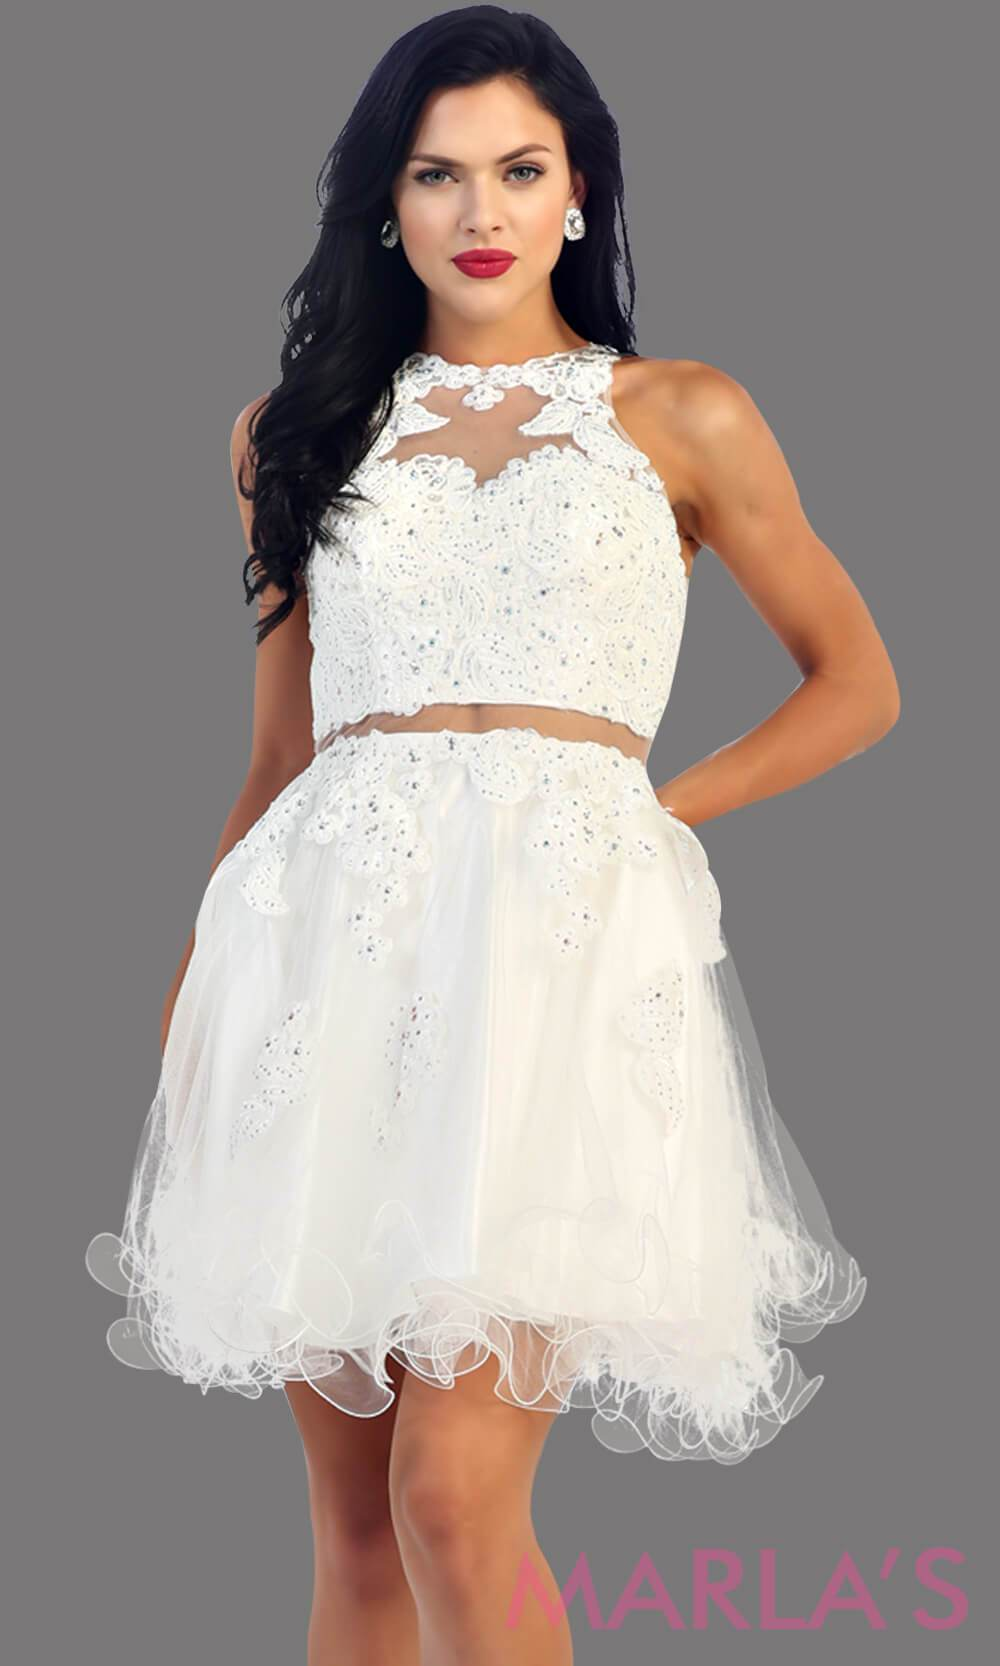 Short white high neck puffy dress with lace bodice. This is perfect white cupcake dress for grade 8 graduation, white damas dress, homecoming, bridal shower. Available in plus sizes.